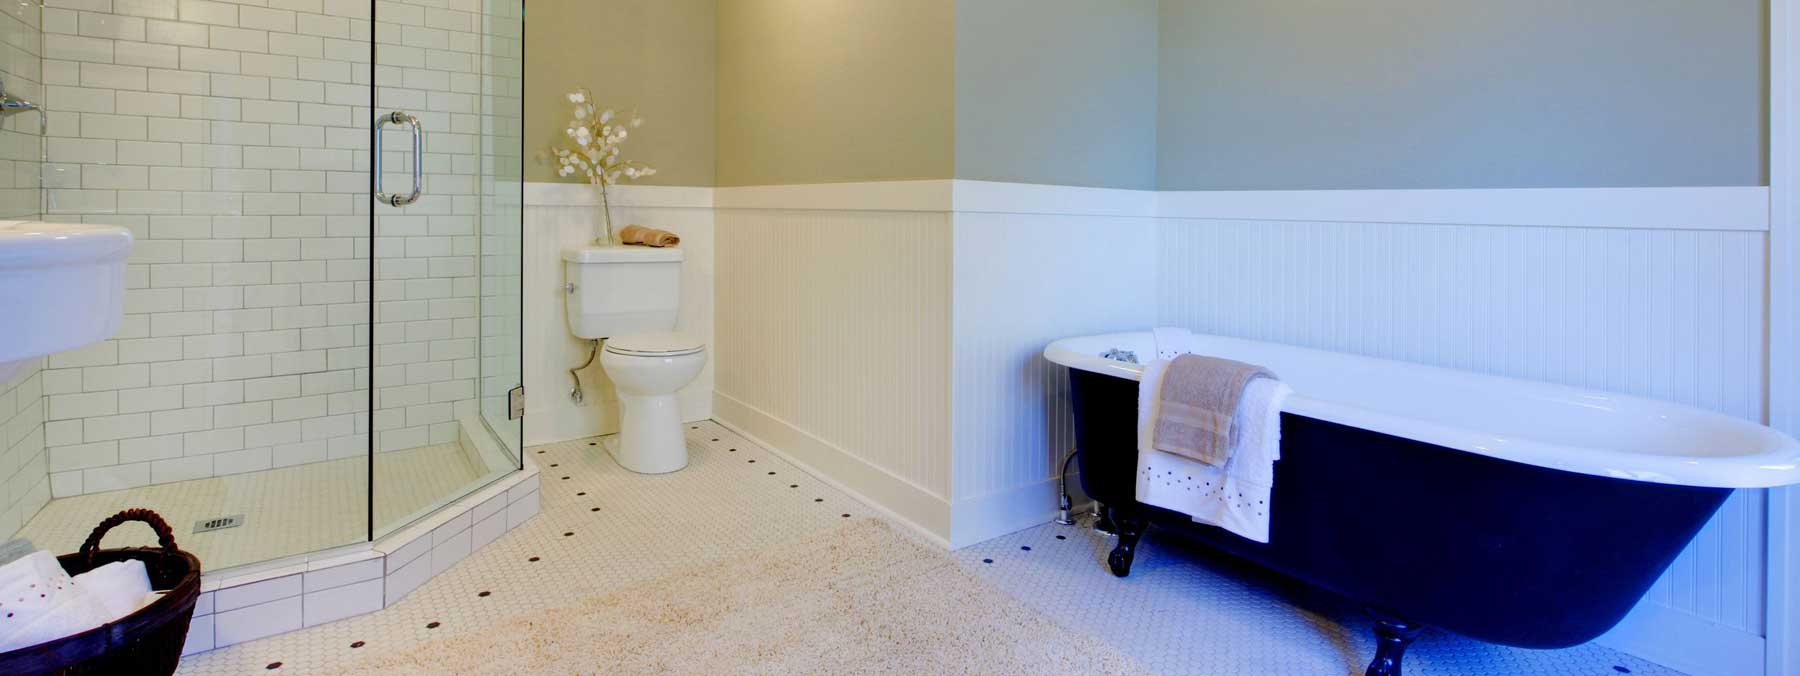 Complete bathroom renovations sydney for Complete bathroom renovations